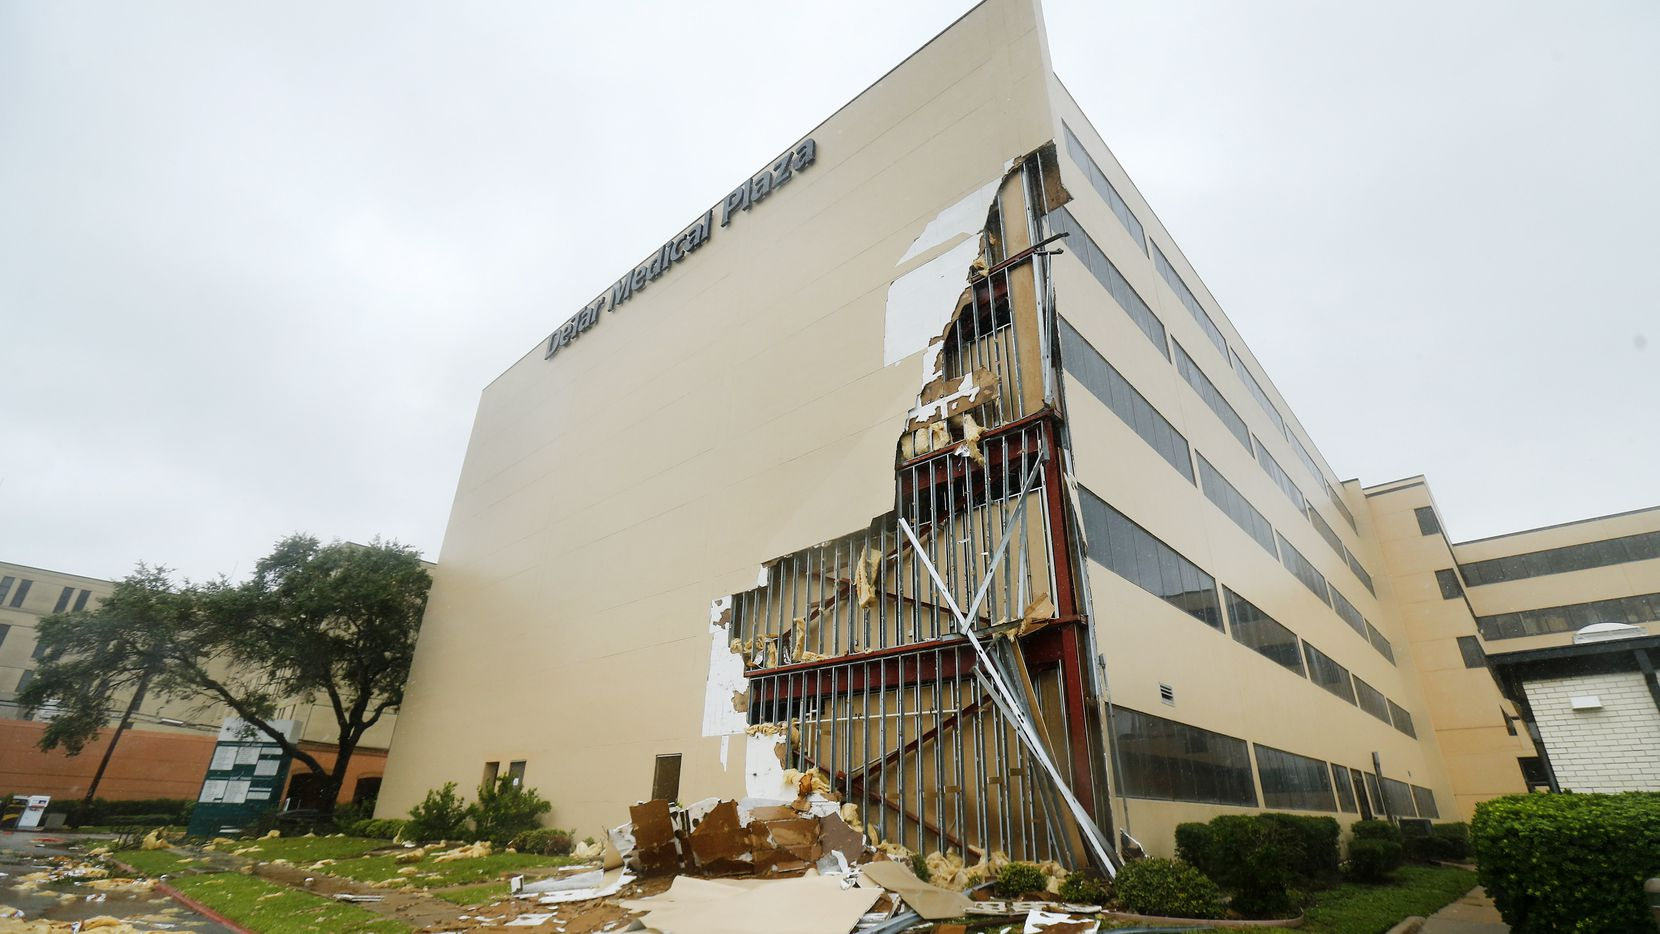 The Detar Medical Plaza in Victoria, Texas sustained damage to several floors after Hurricane Harvey tore it open early Saturday.